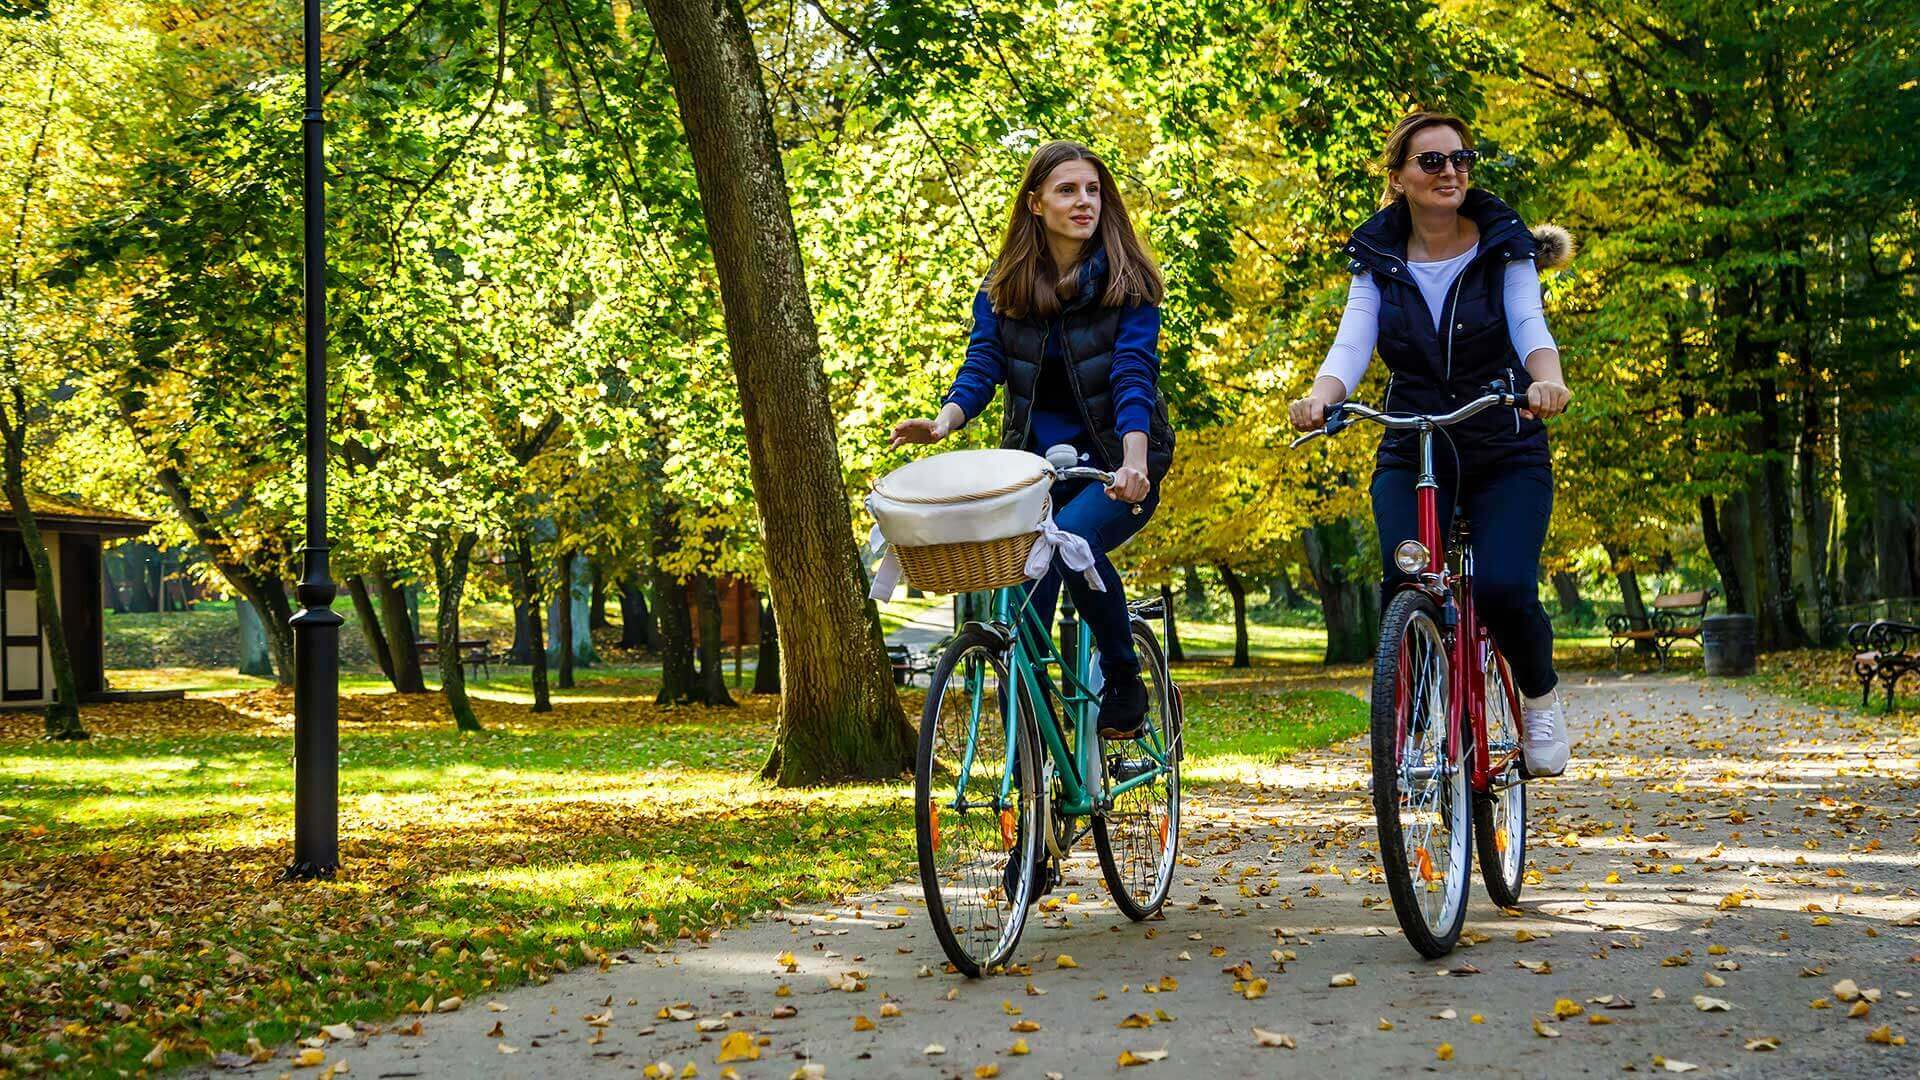 Two Women Riding Bicycles In City Park